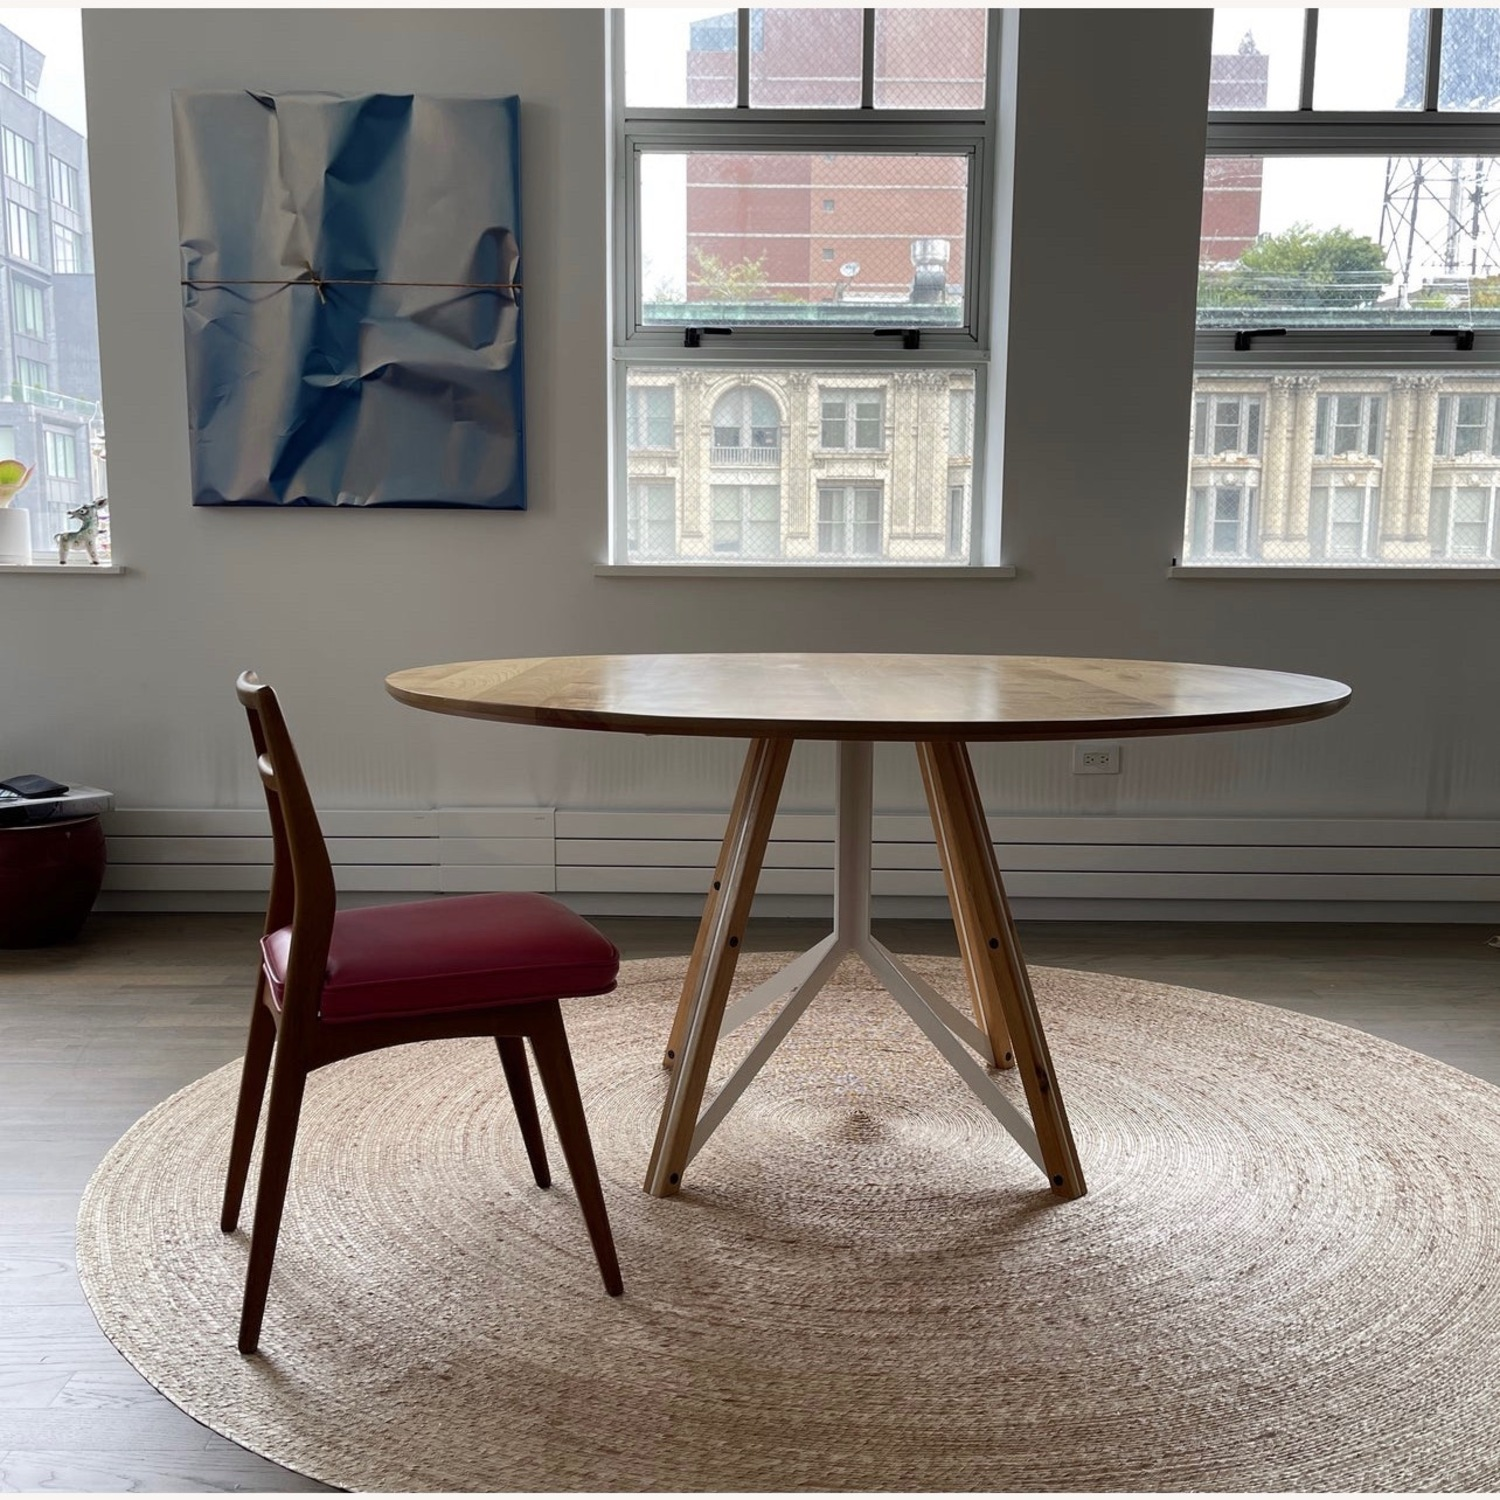 Birch Wood Round Dining Table 60 - image-9